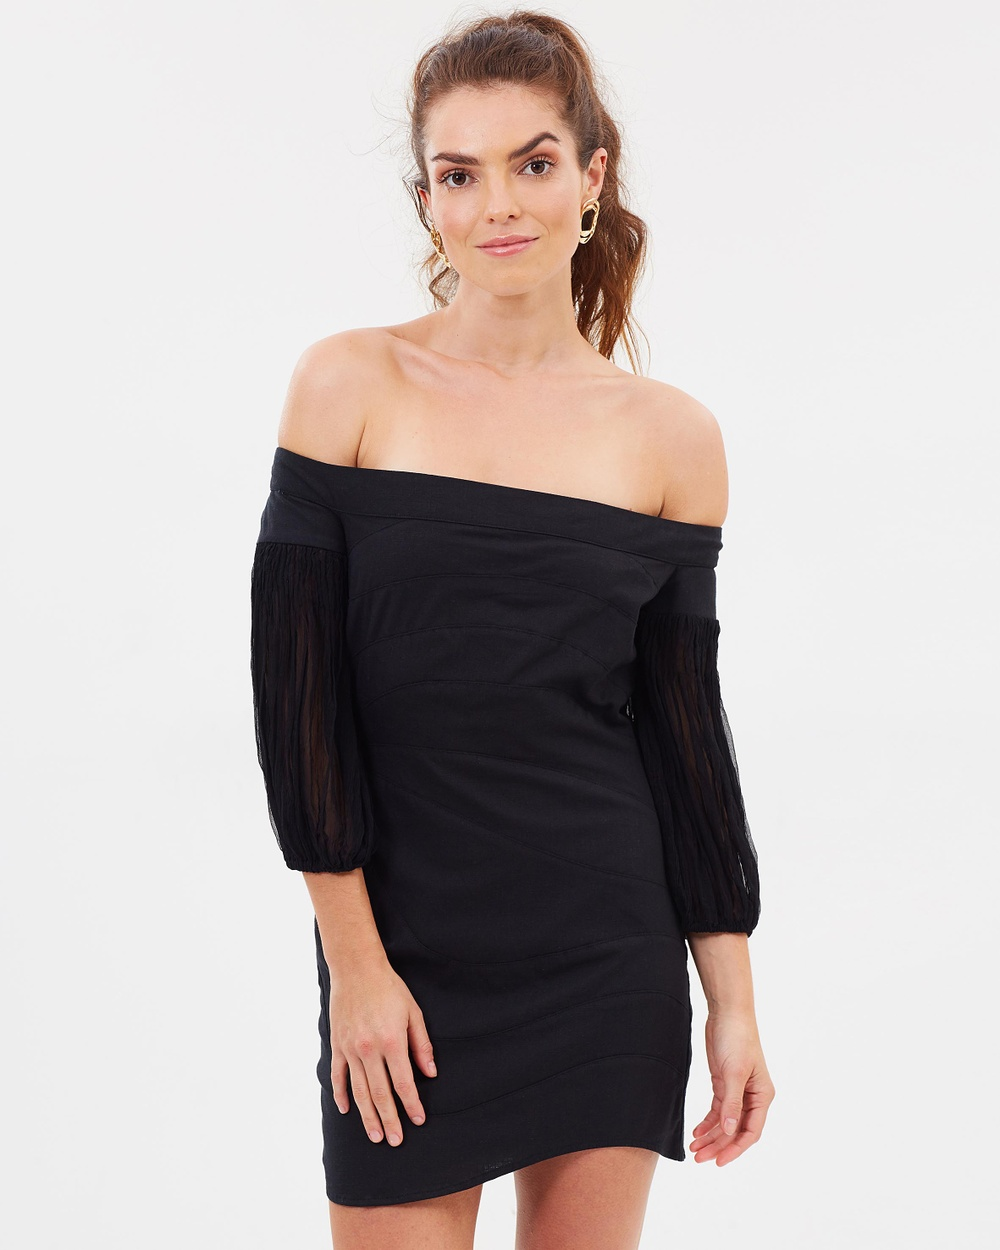 MLM Label Amore Dress Dresses Black Amore Dress